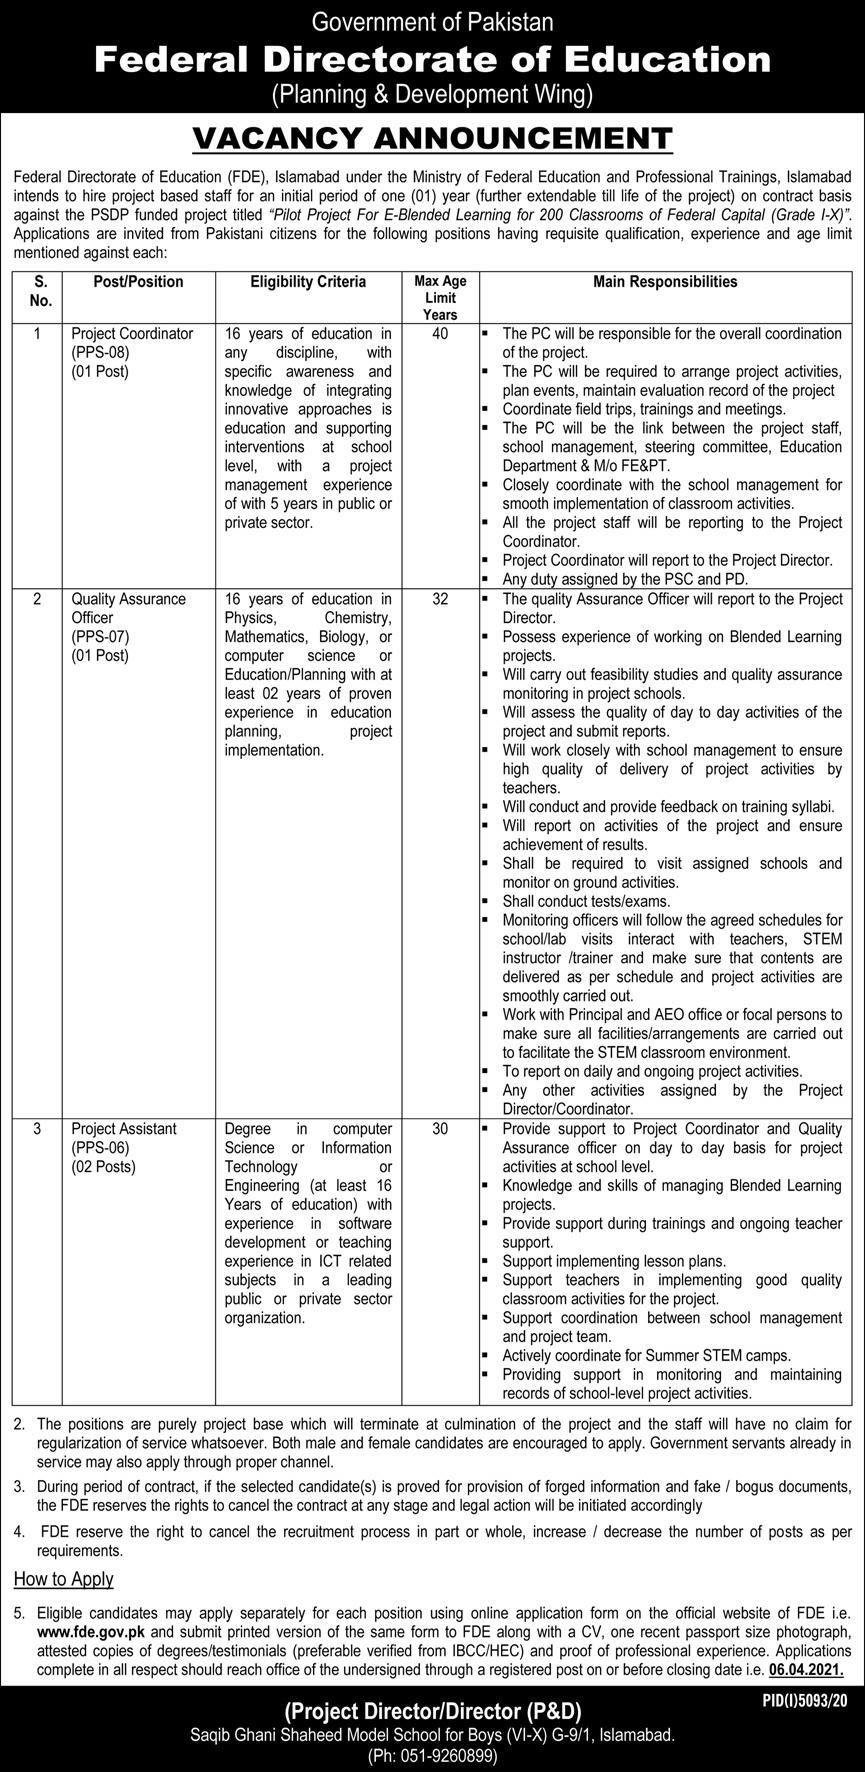 Latest Govt Jobs 2021 in Federal Directorate of Education (FDE)